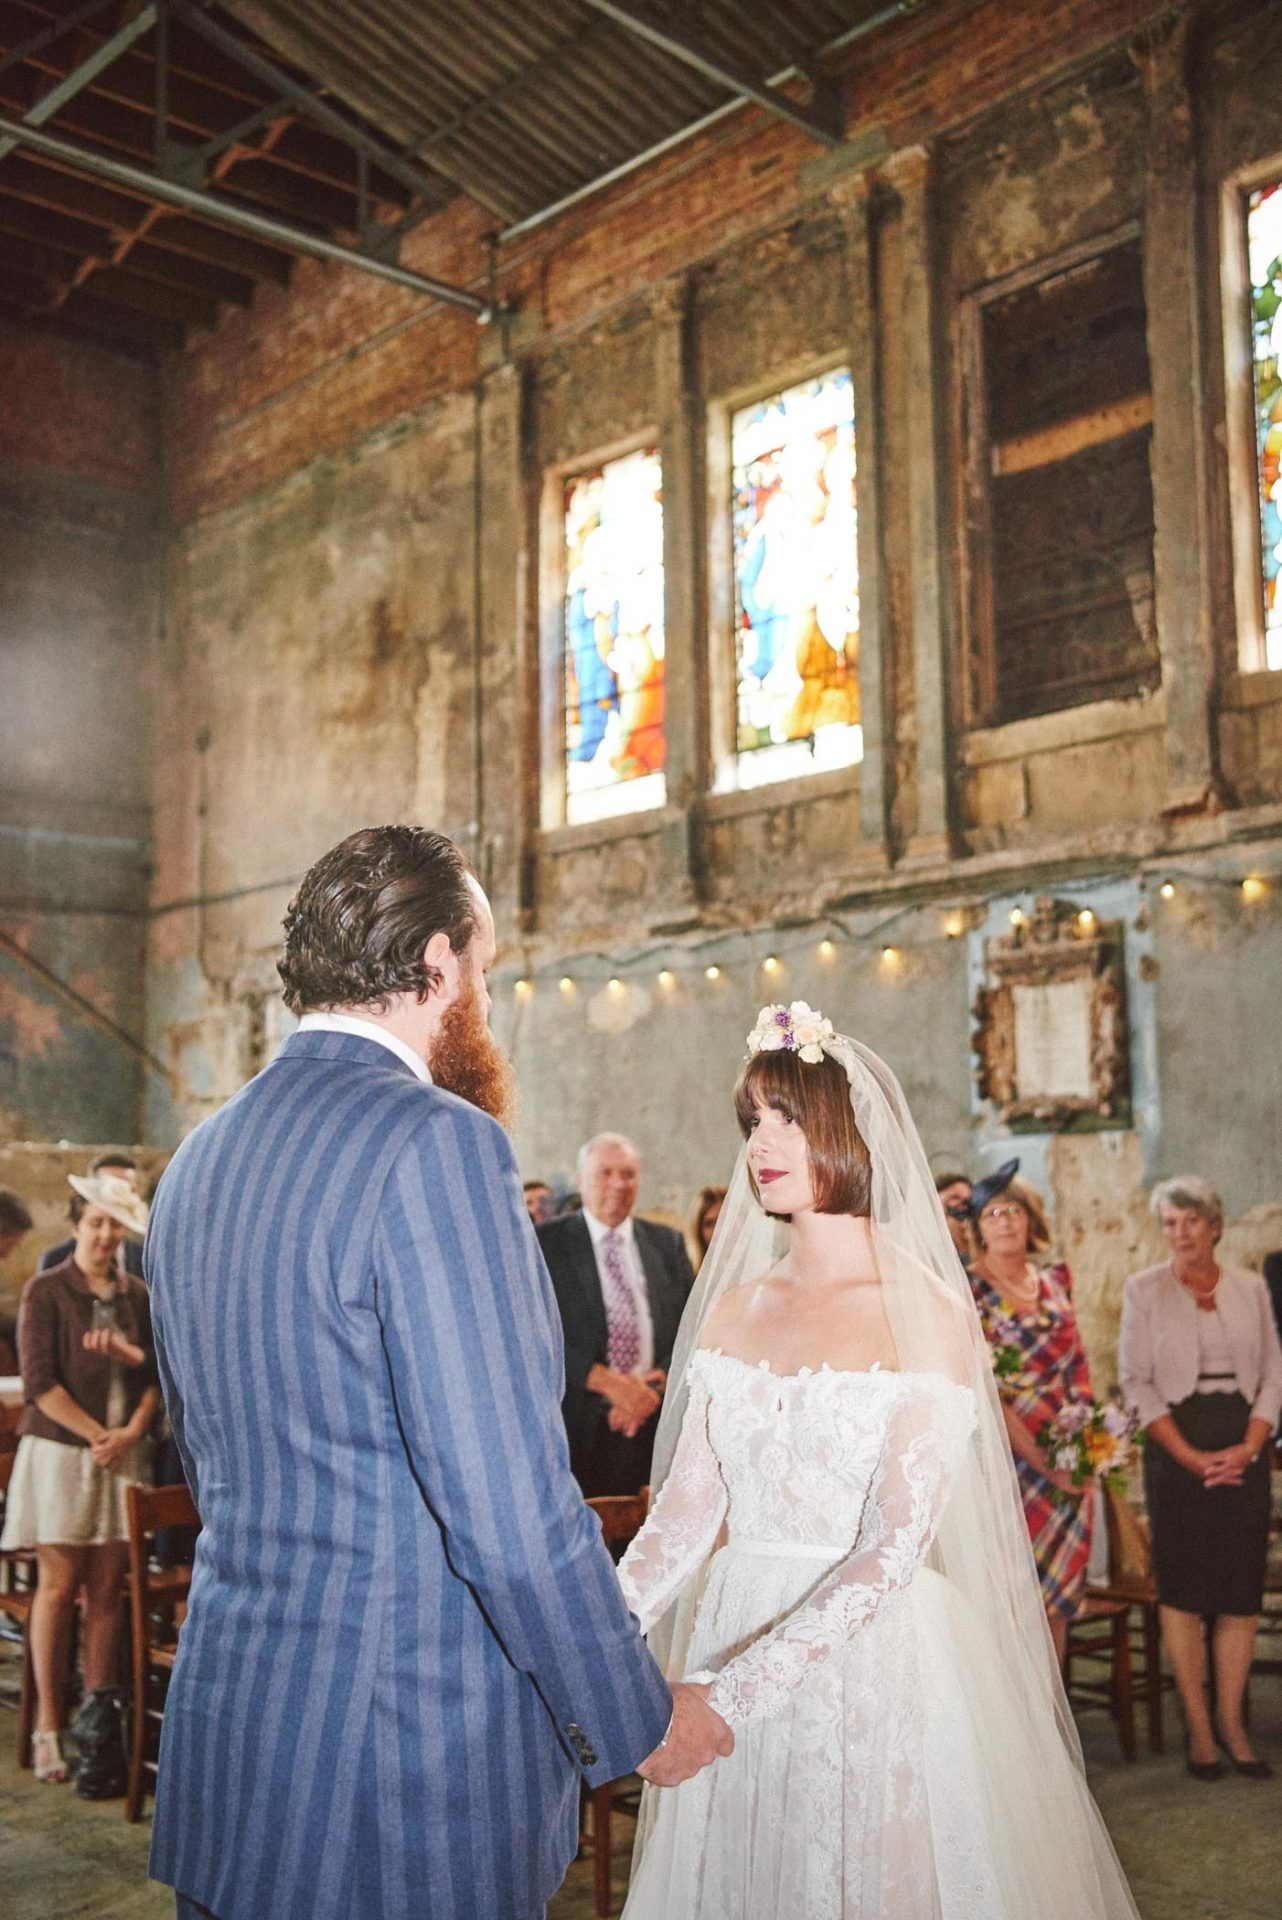 Bride and groom smiling whilst stood at the alter of the decaying asylum venue in London